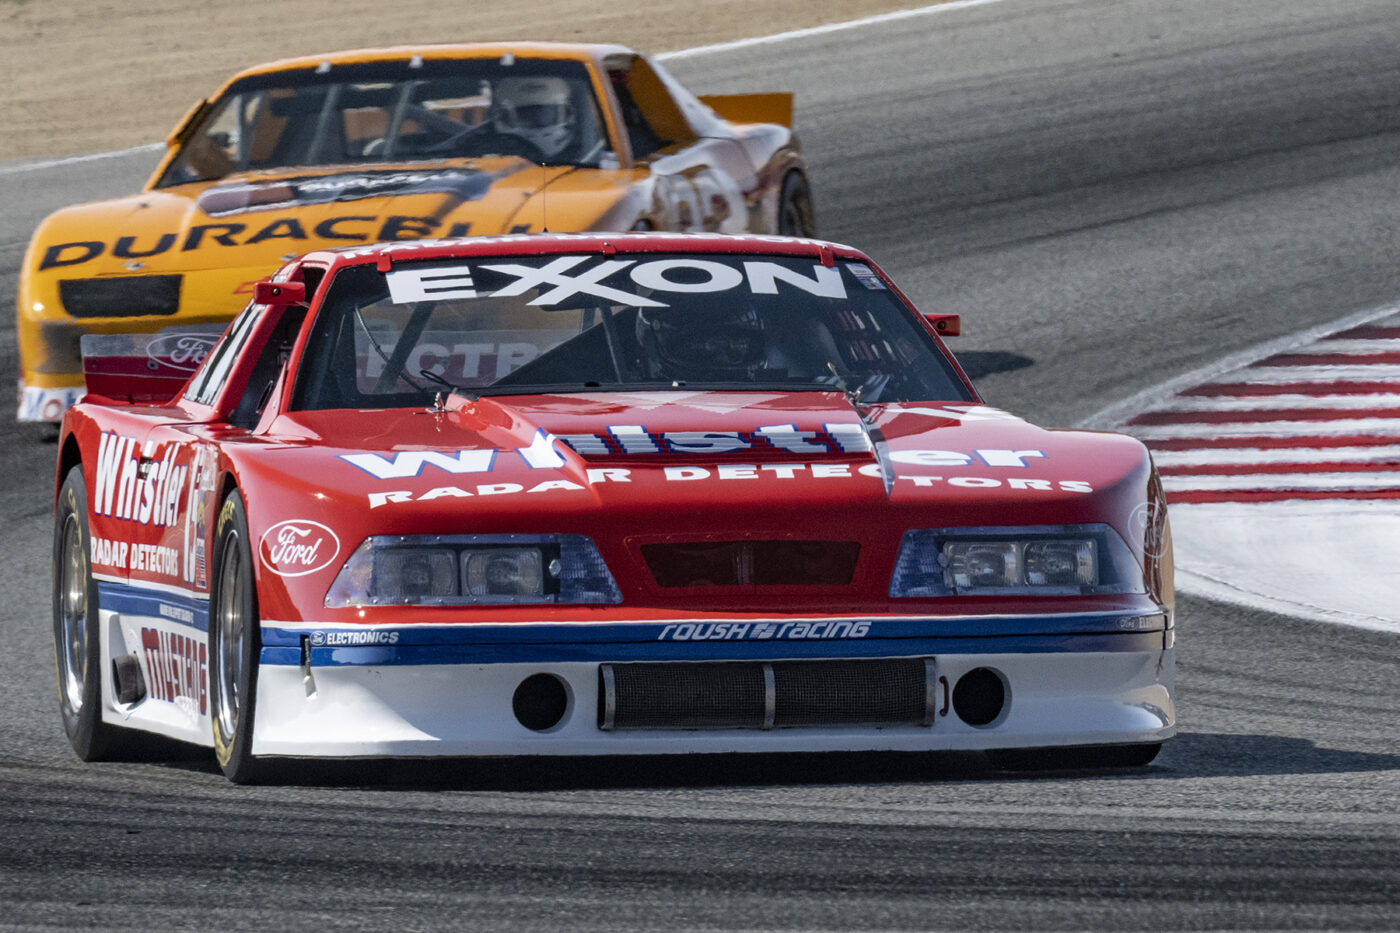 Chris Liebenberg in his 1991 Roush Mustang 358 in turn five. ©2021 Dennis Gray